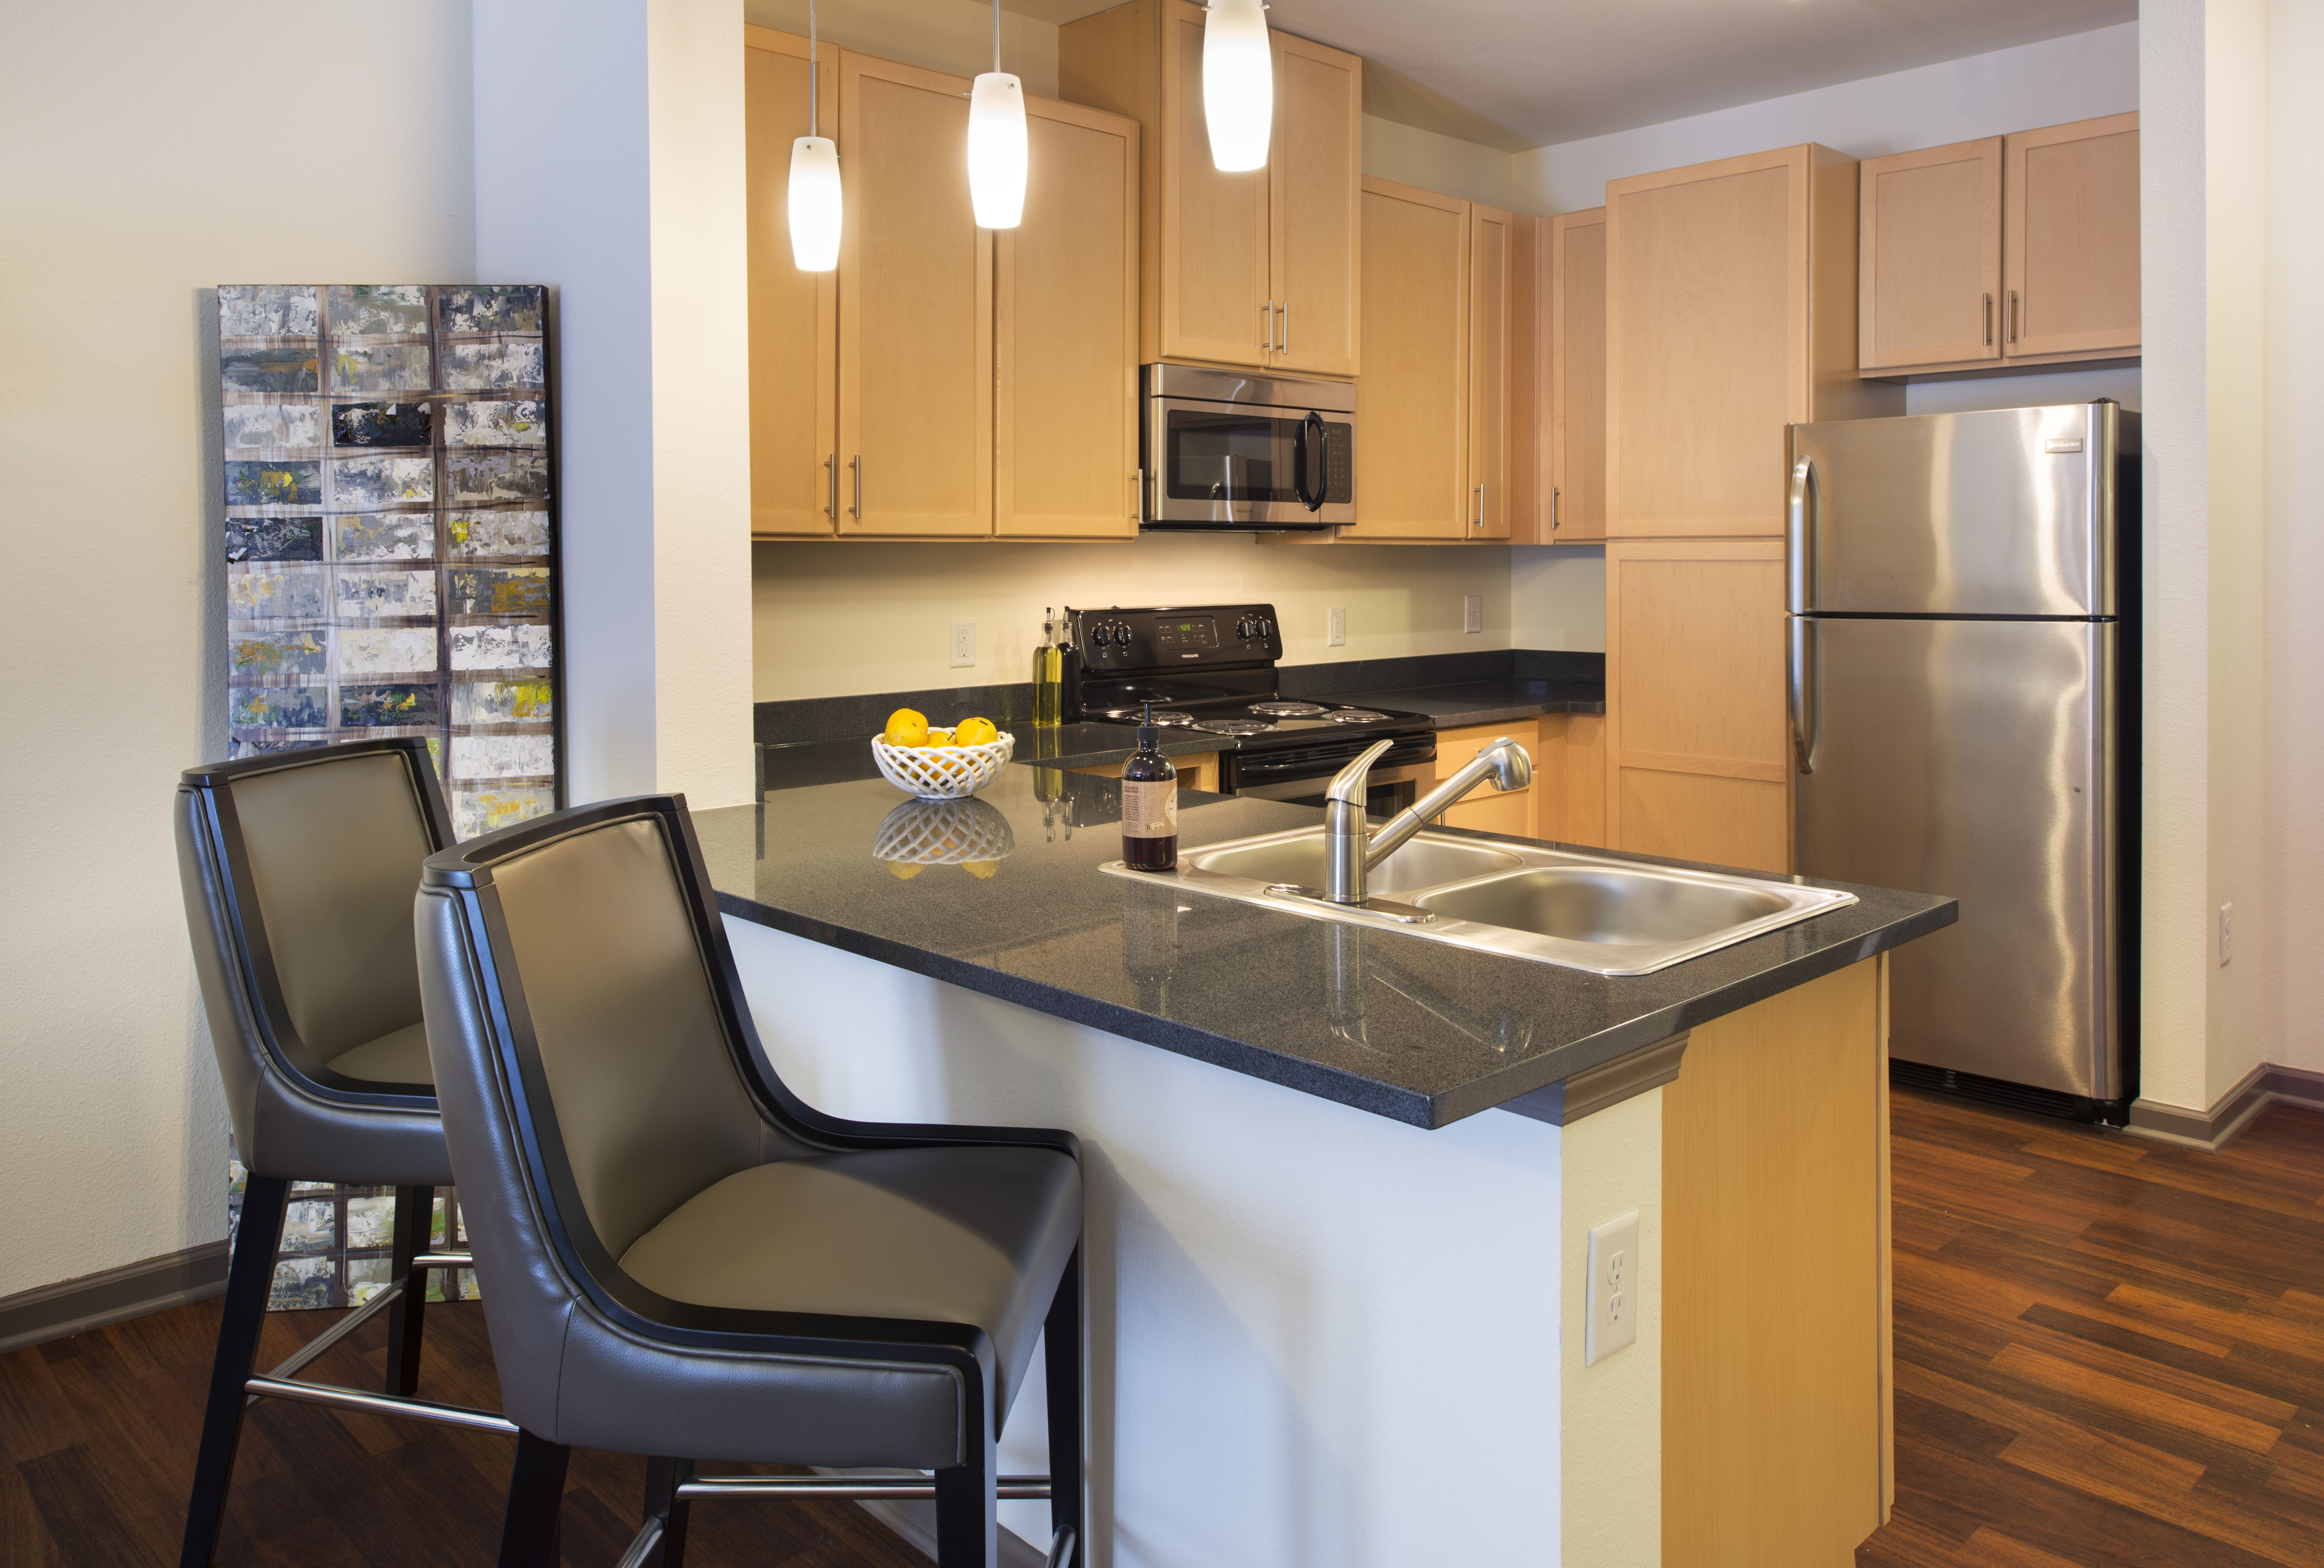 Model Apartment Home At The Boulevard At Oakley Station Located In Cincinnati Ohio Apartments Kitche Apartment Two Bedroom Apartments Apartments For Rent